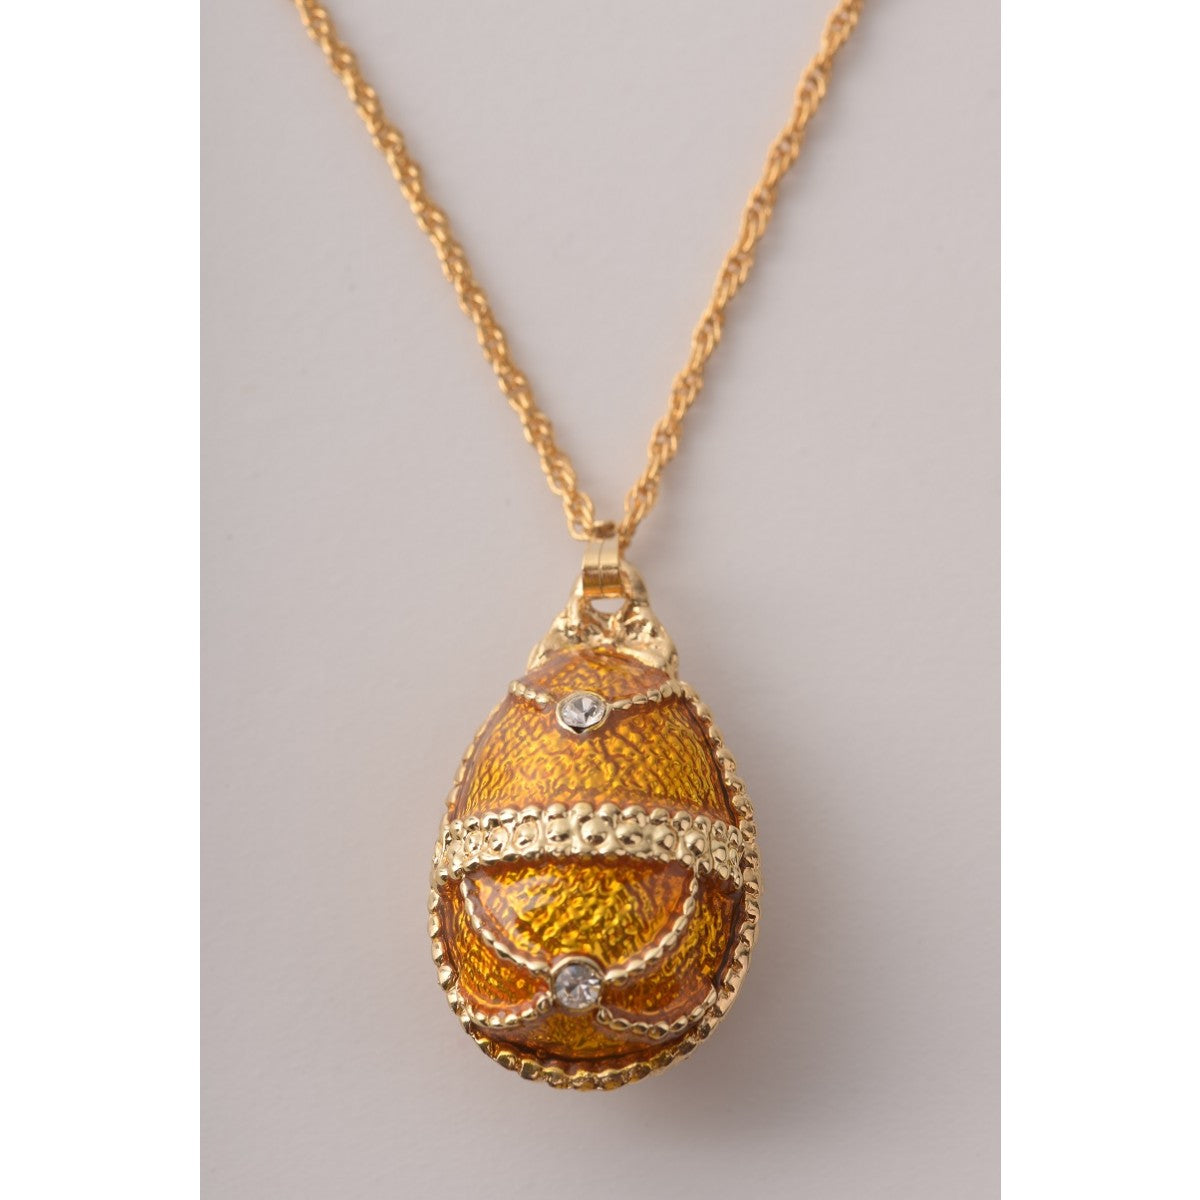 Mustard Yellow Faberge Egg Pendant Necklace